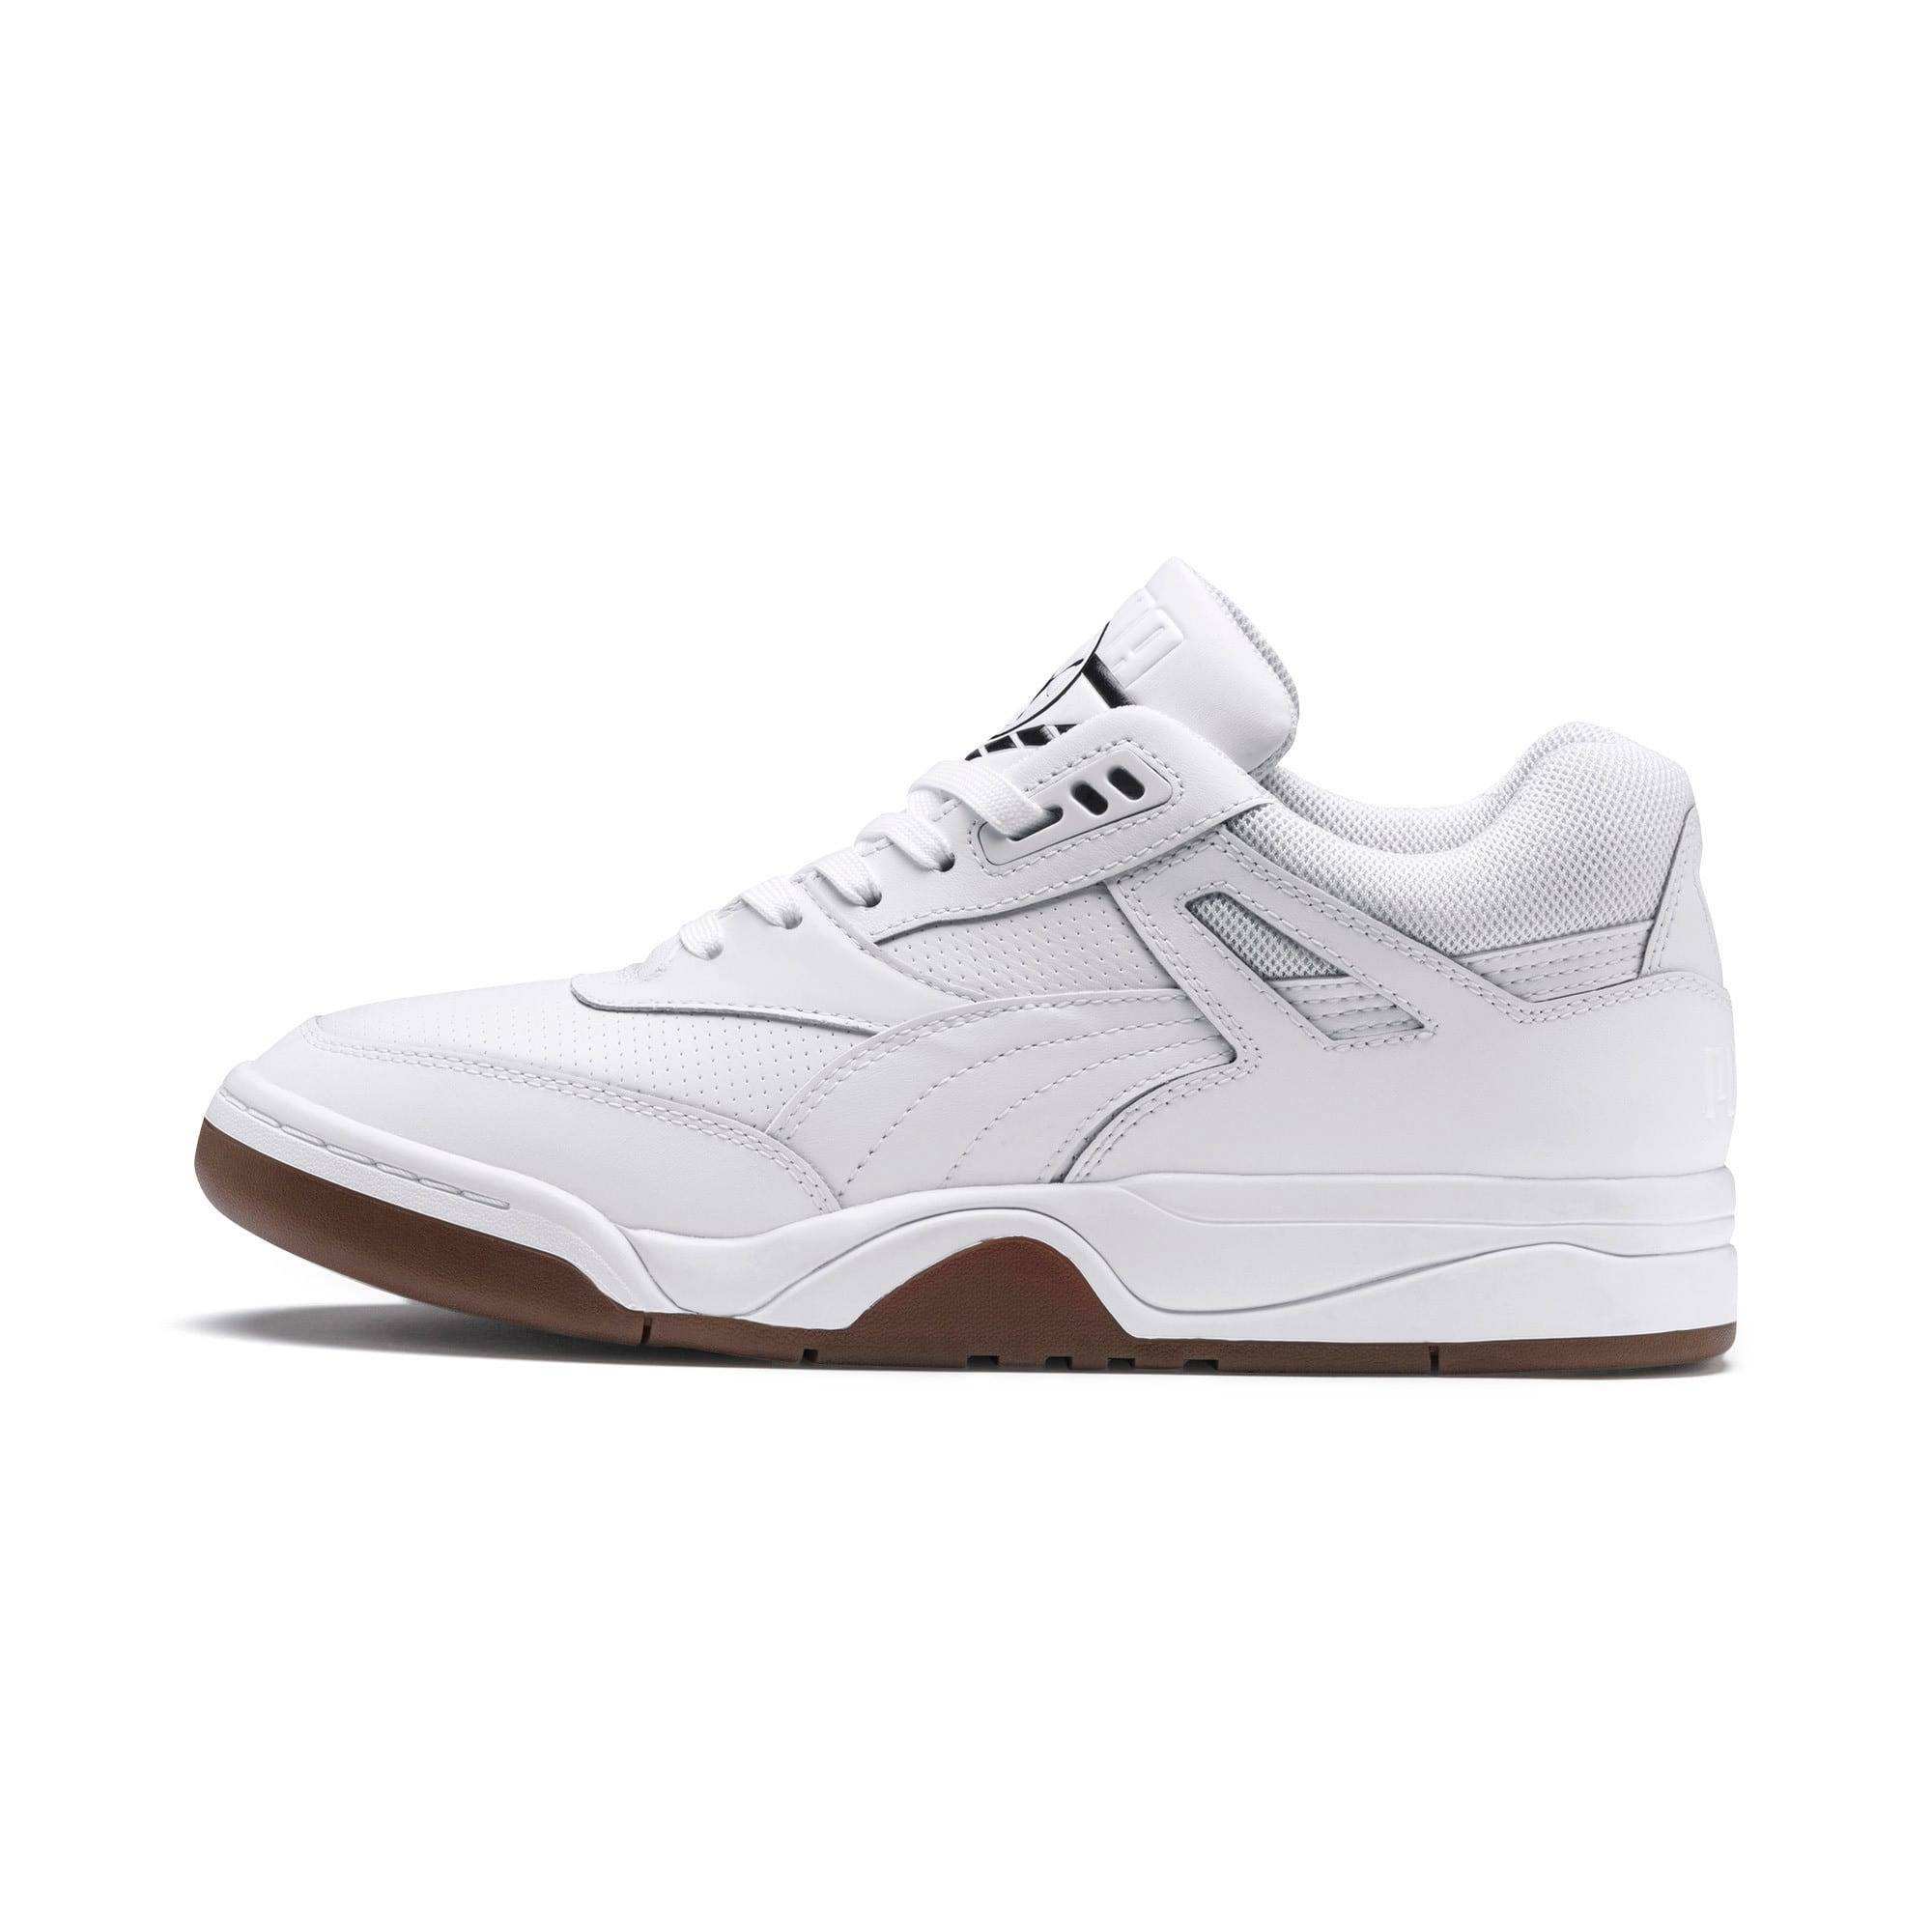 PUMA Palace Guard Men's Basketball Trainers, Bianco, Taglia 46